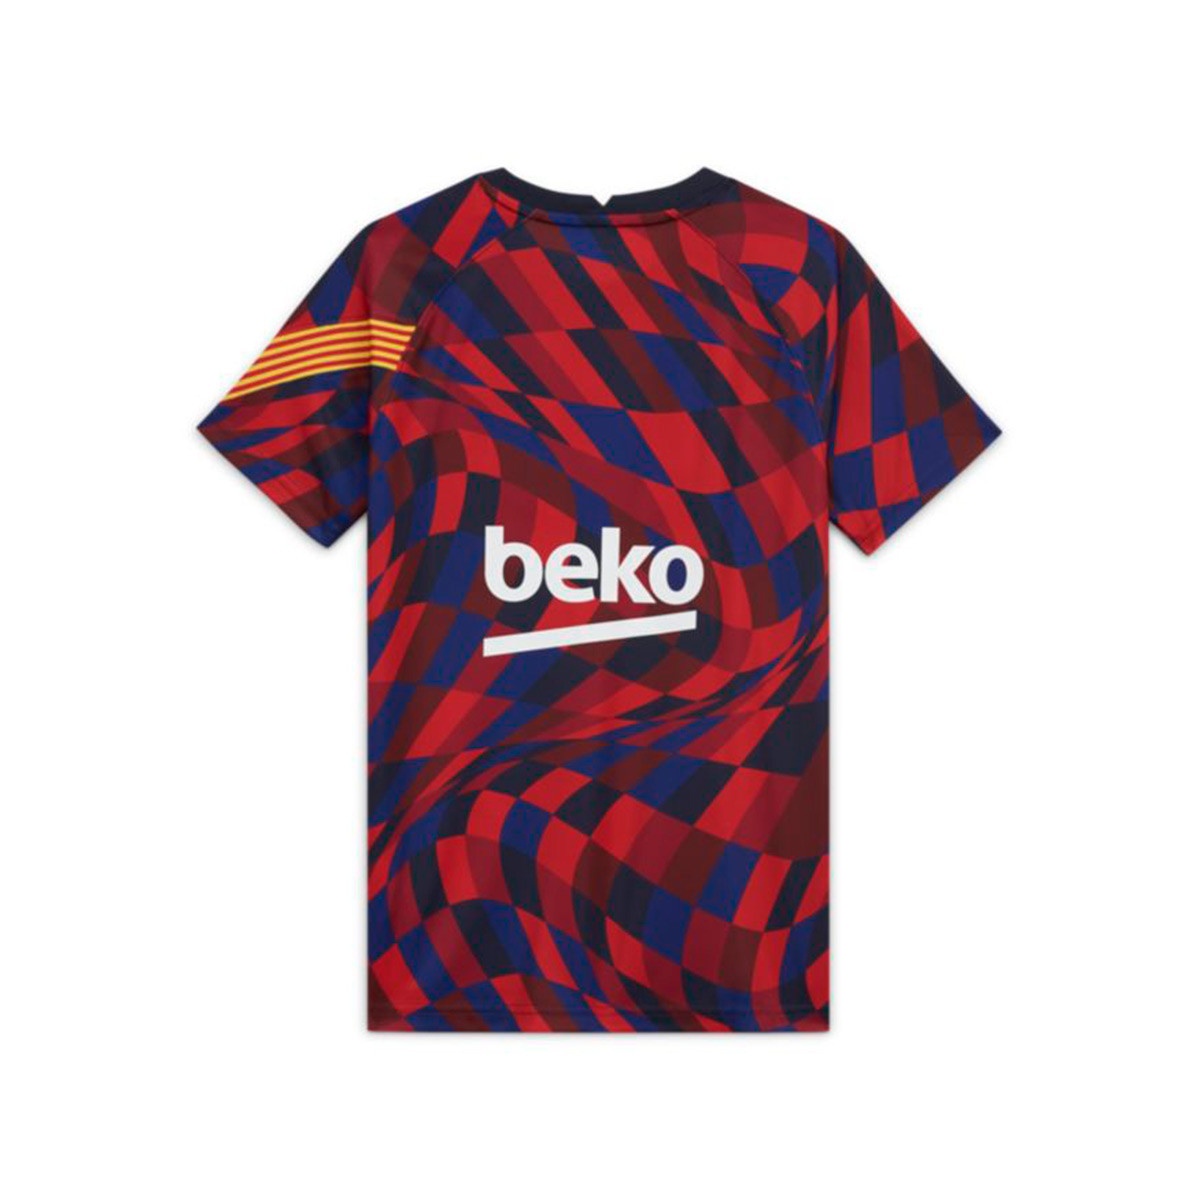 jersey nike fc barcelona pre match top 2020 2021 nino university red football store futbol emotion nike fc barcelona pre match top 2020 2021 nino jersey